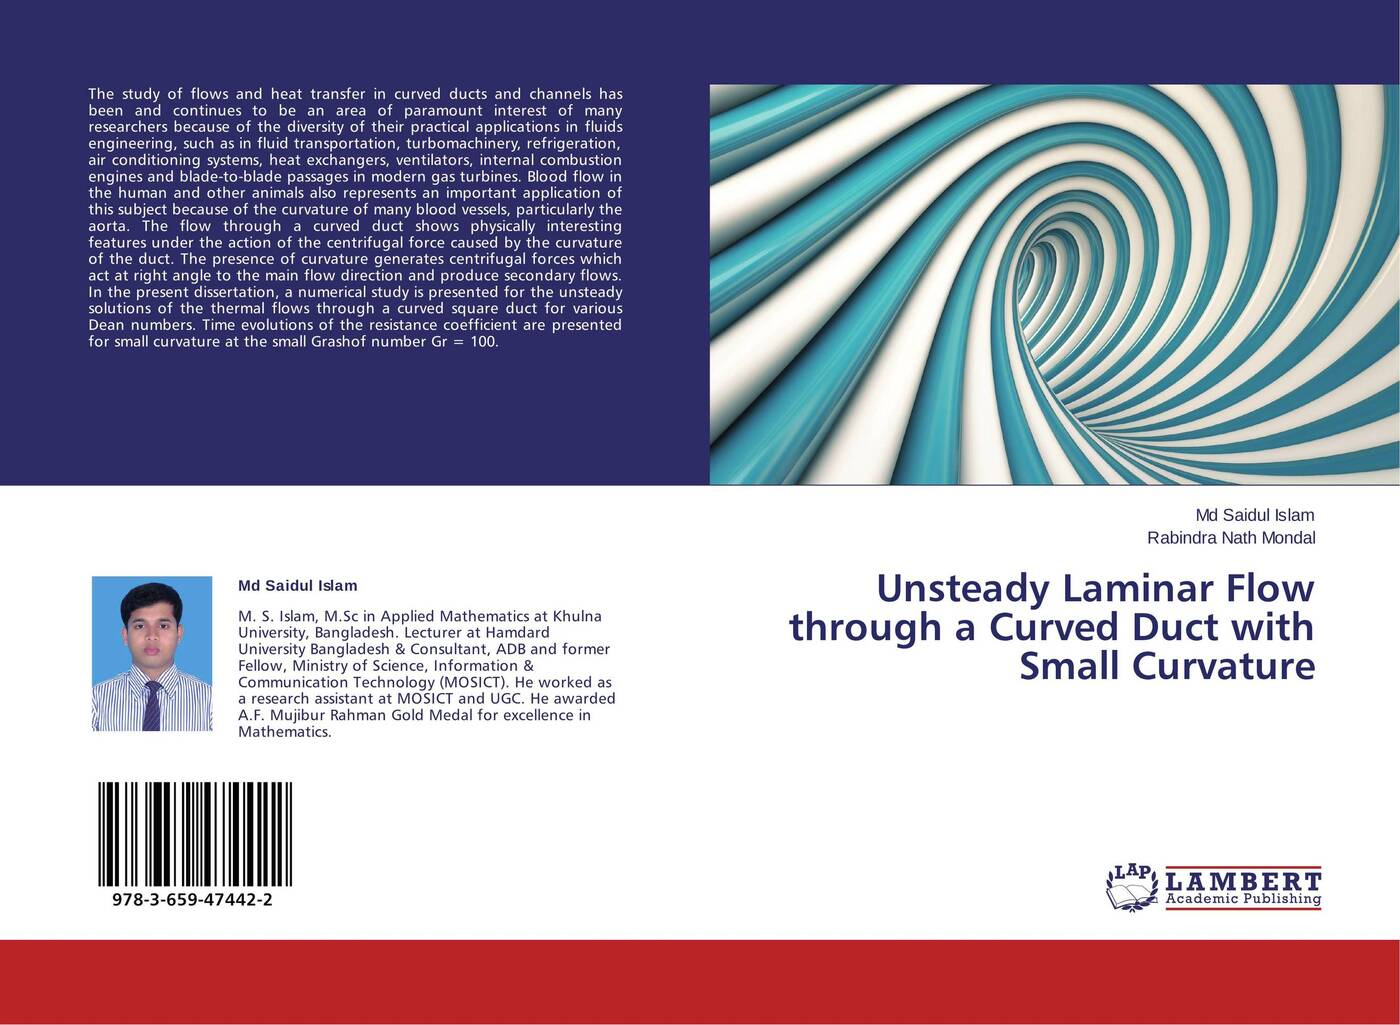 islam eldesoky unsteady mhd pulsatile flow of blood through porous medium Md Saidul Islam and Rabindra Nath Mondal Unsteady Laminar Flow through a Curved Duct with Small Curvature